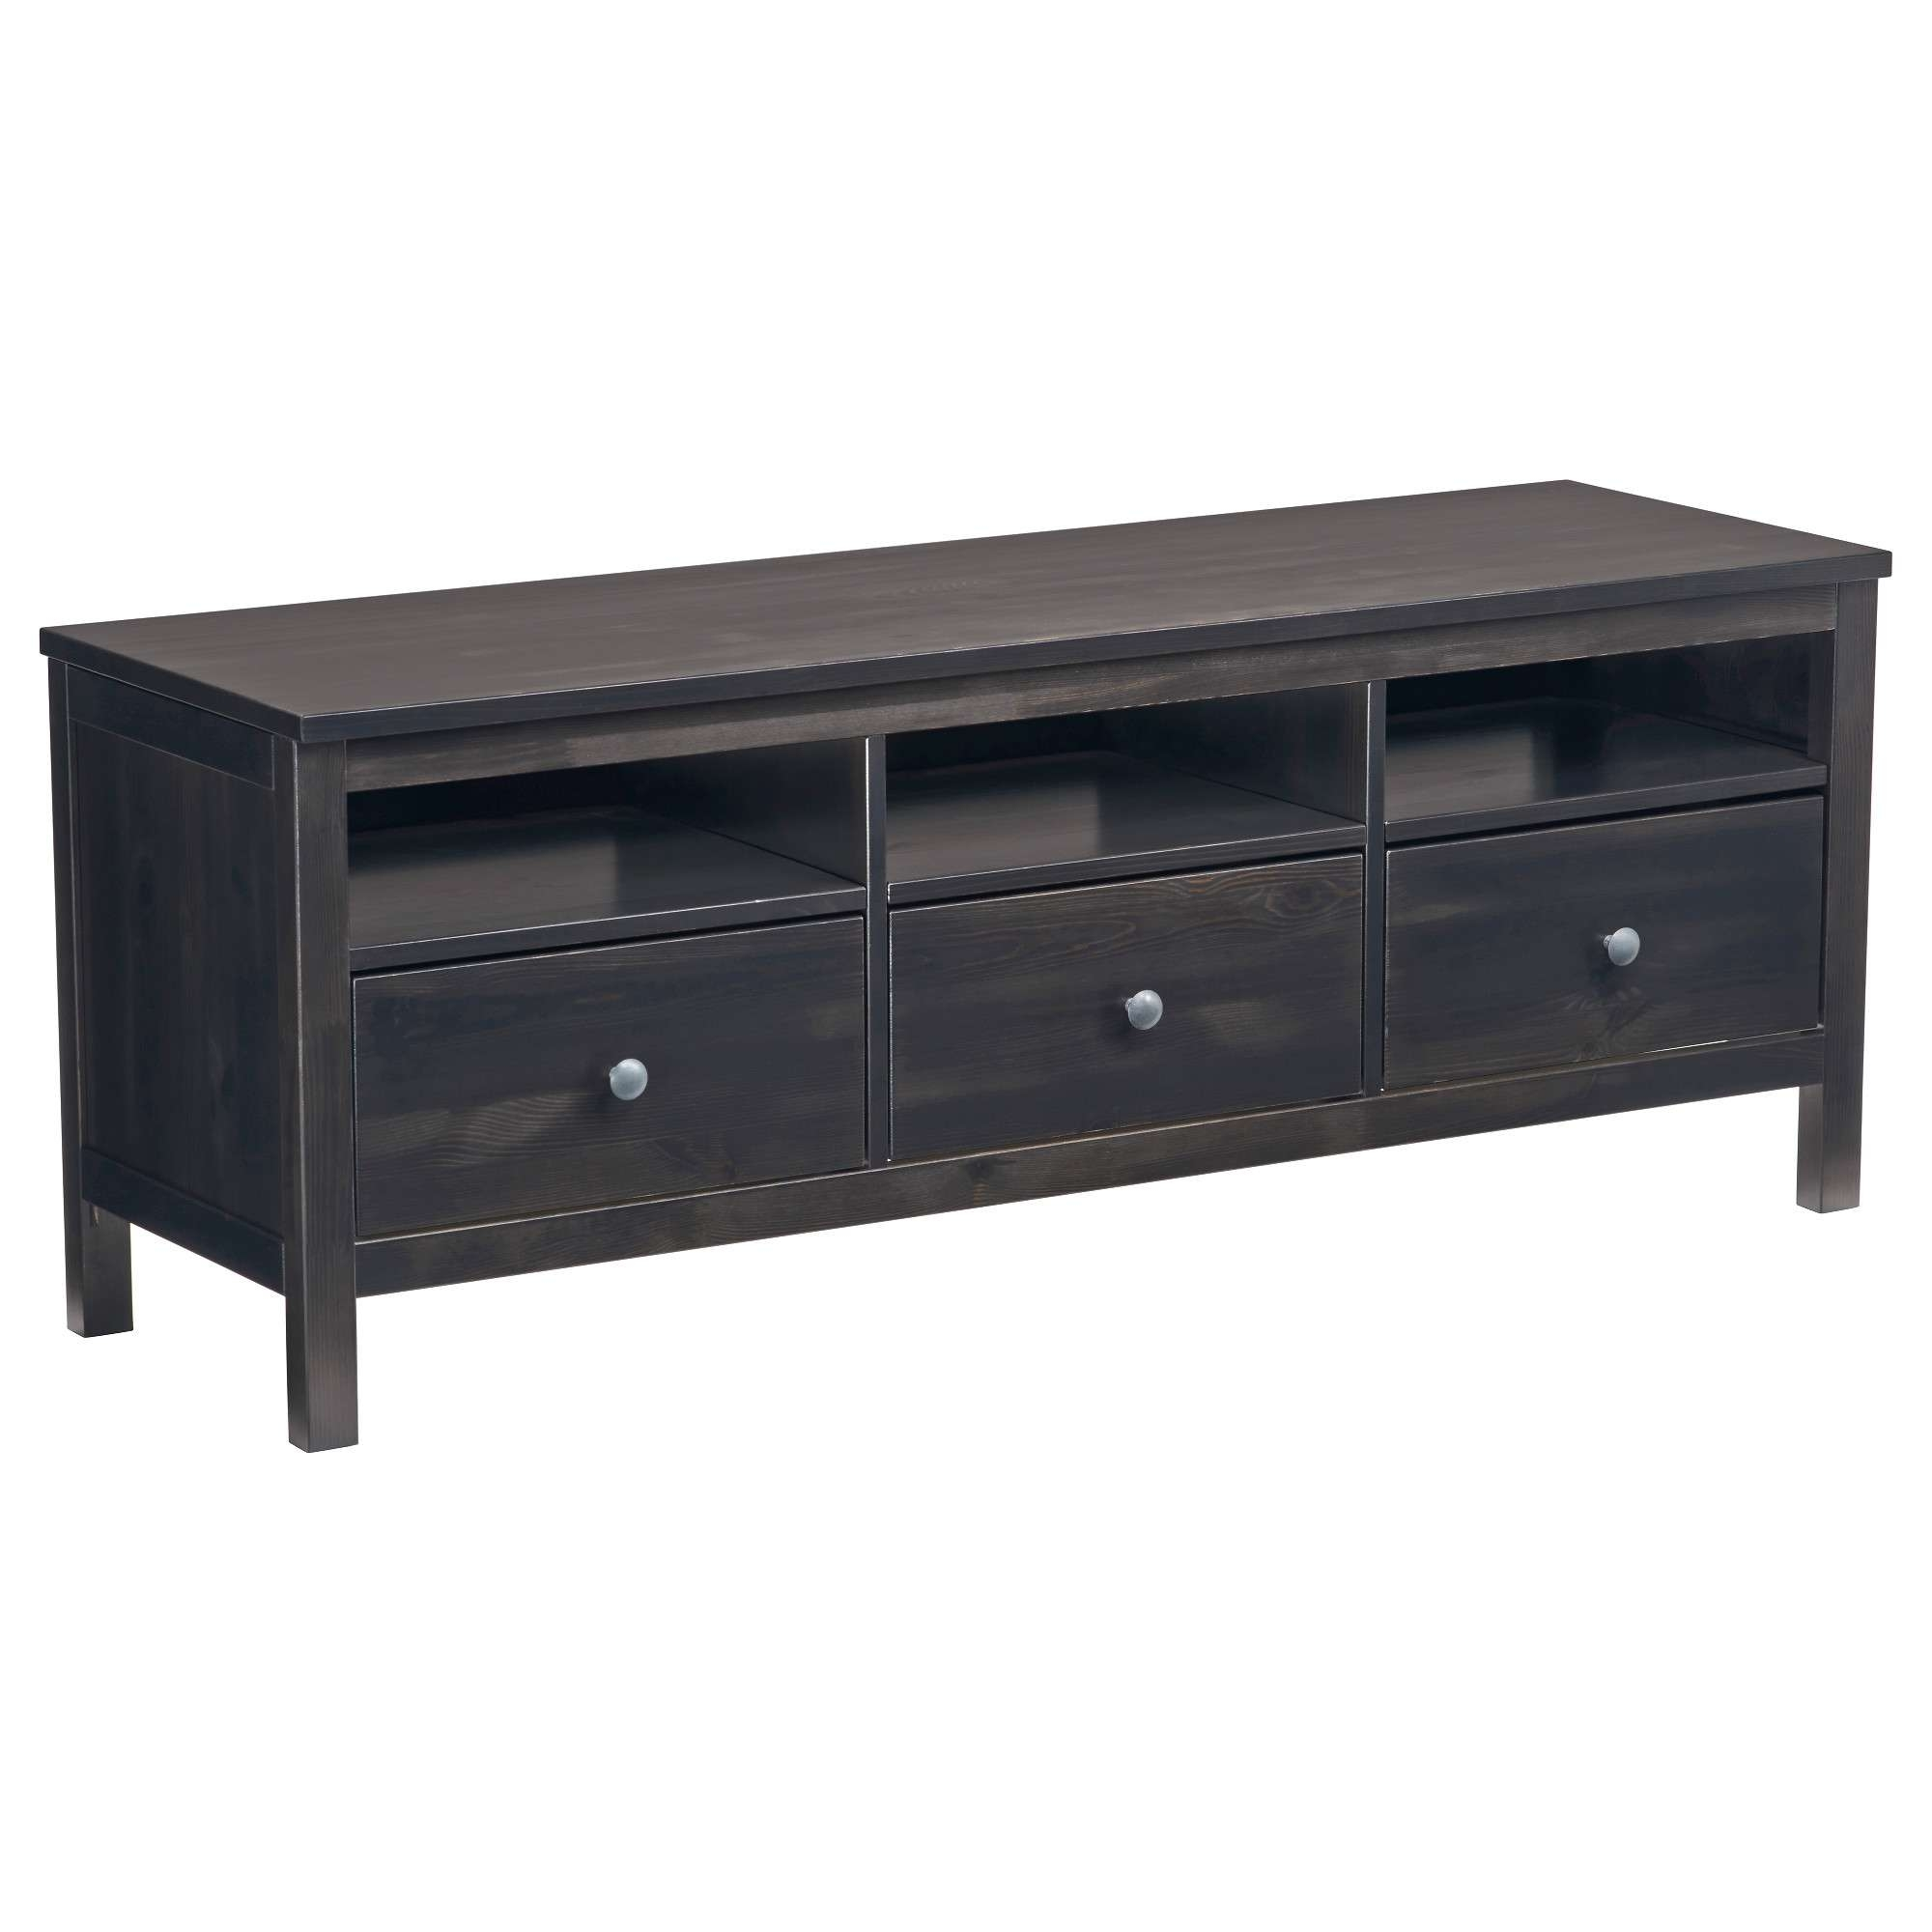 Tv Stands & Entertainment Centers – Ikea Pertaining To Black Tv Cabinets With Drawers (View 18 of 20)